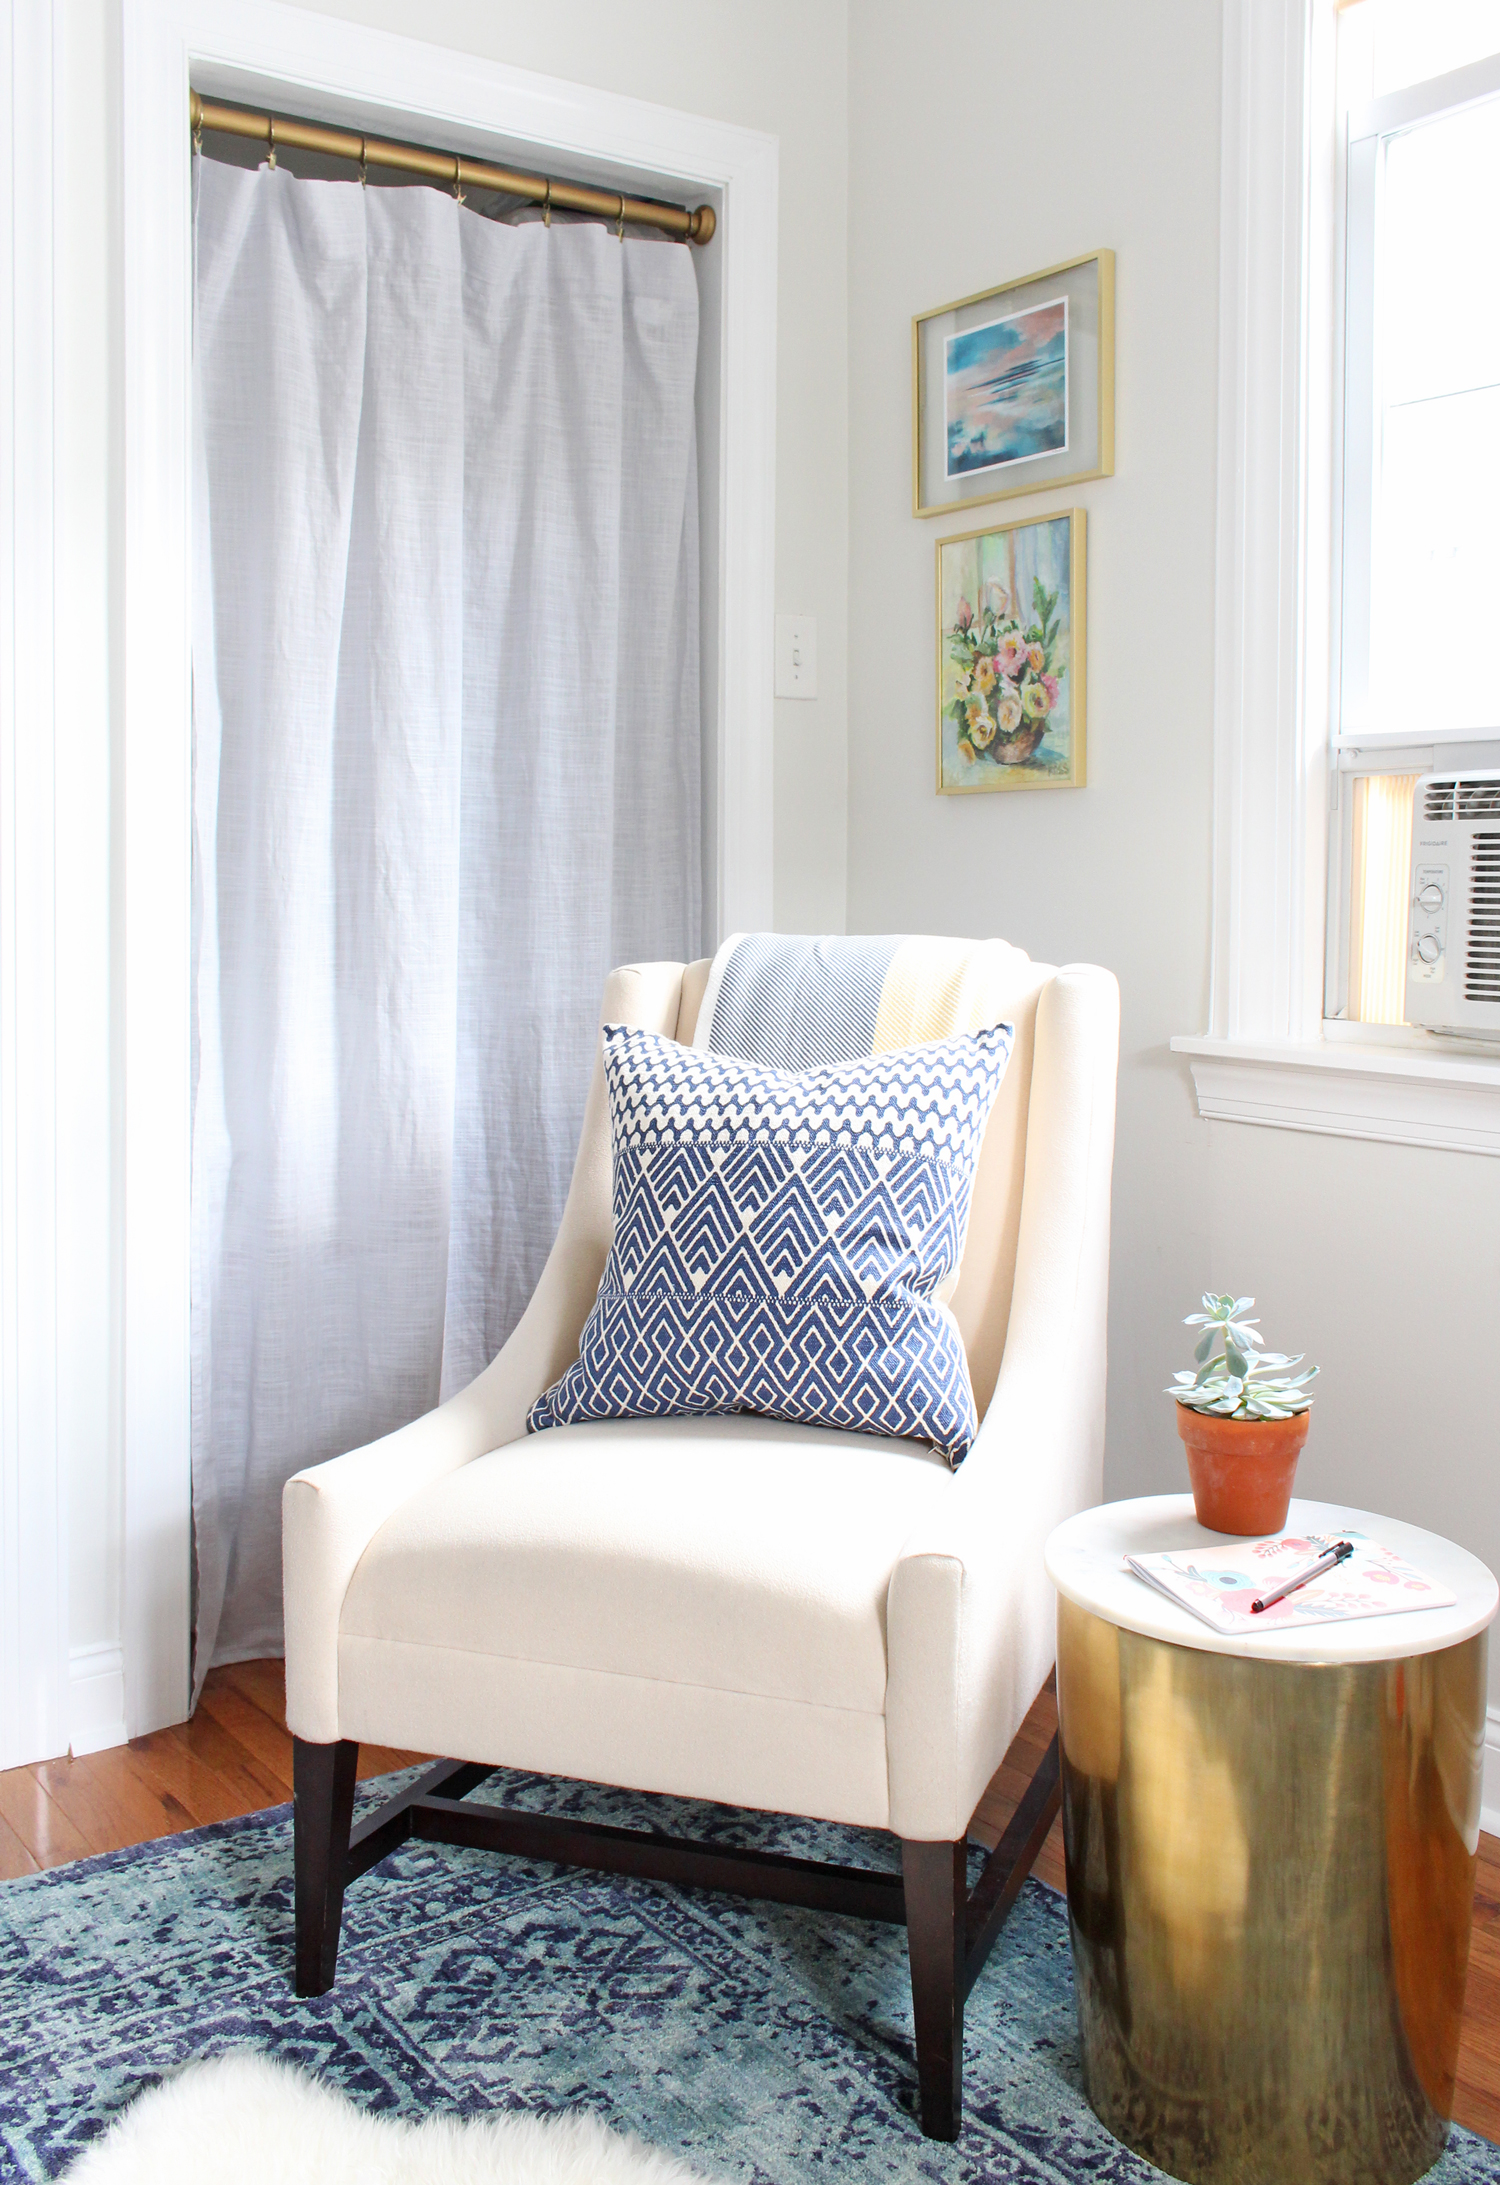 Cozy corner for reading and watching TV in Mix & Match Design Company's home office.